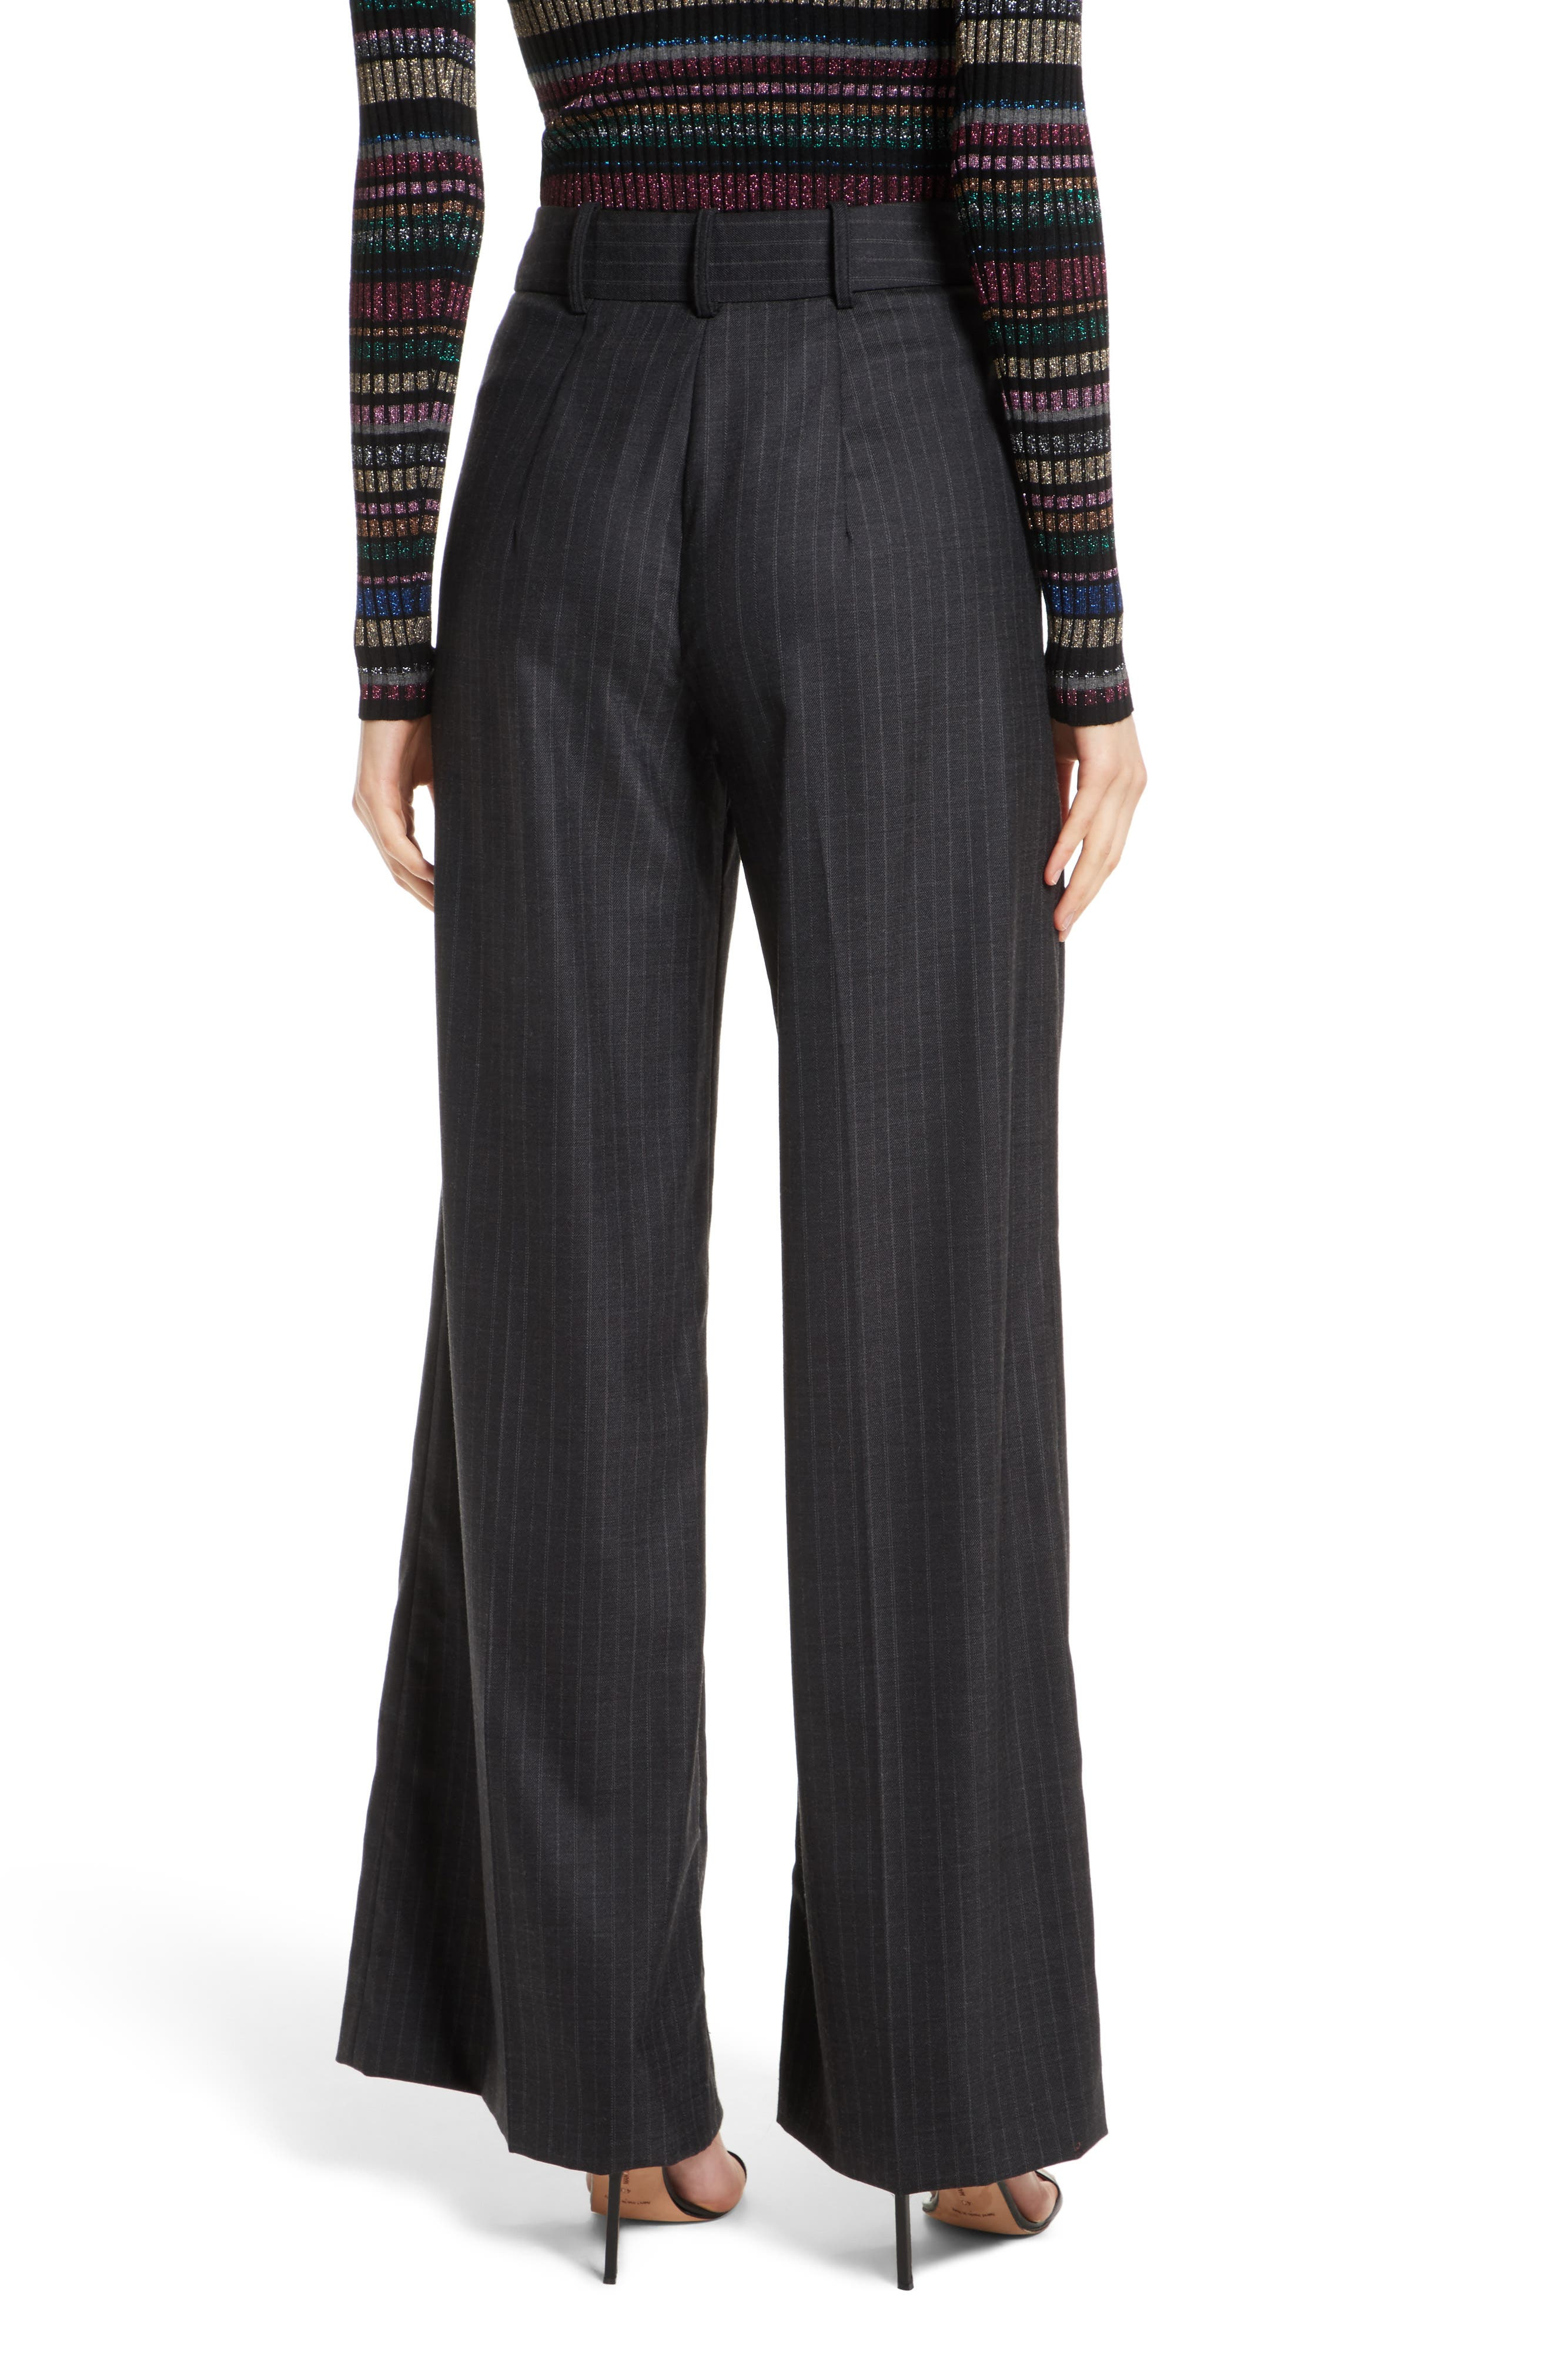 Sia Pinstripe Italian Stretch Wool Trousers,                             Alternate thumbnail 2, color,                             020